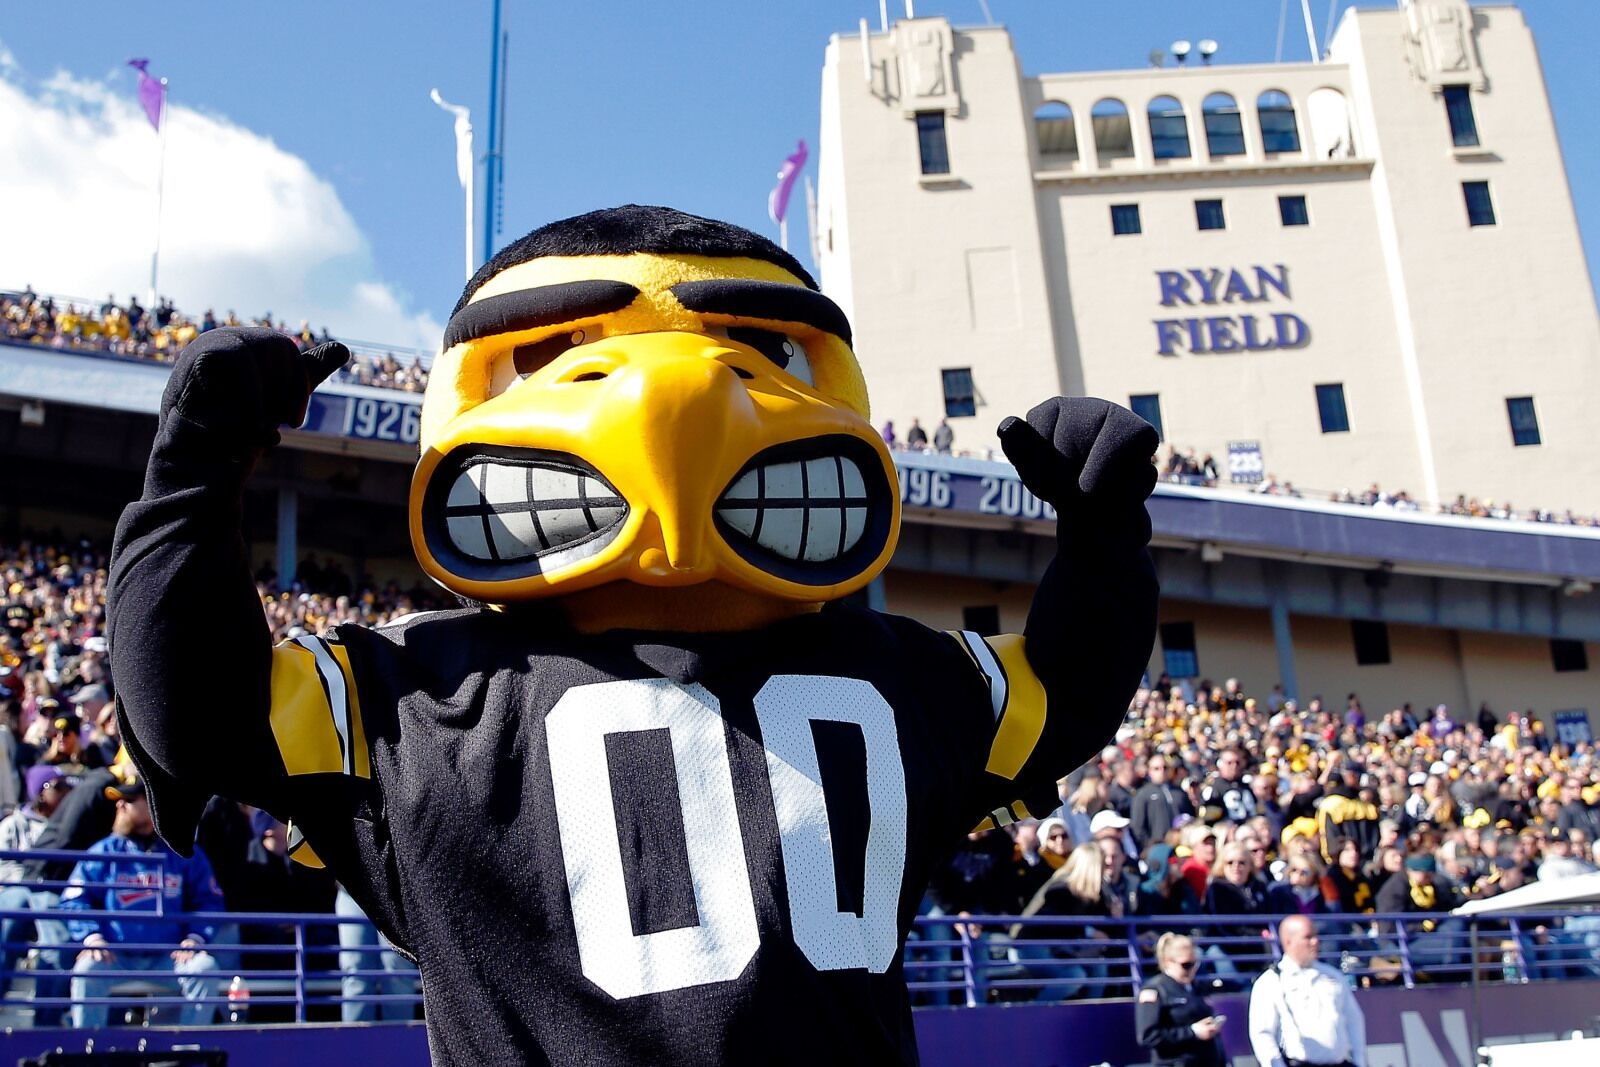 Iowa football: Herky not getting respected in these mascot rankings